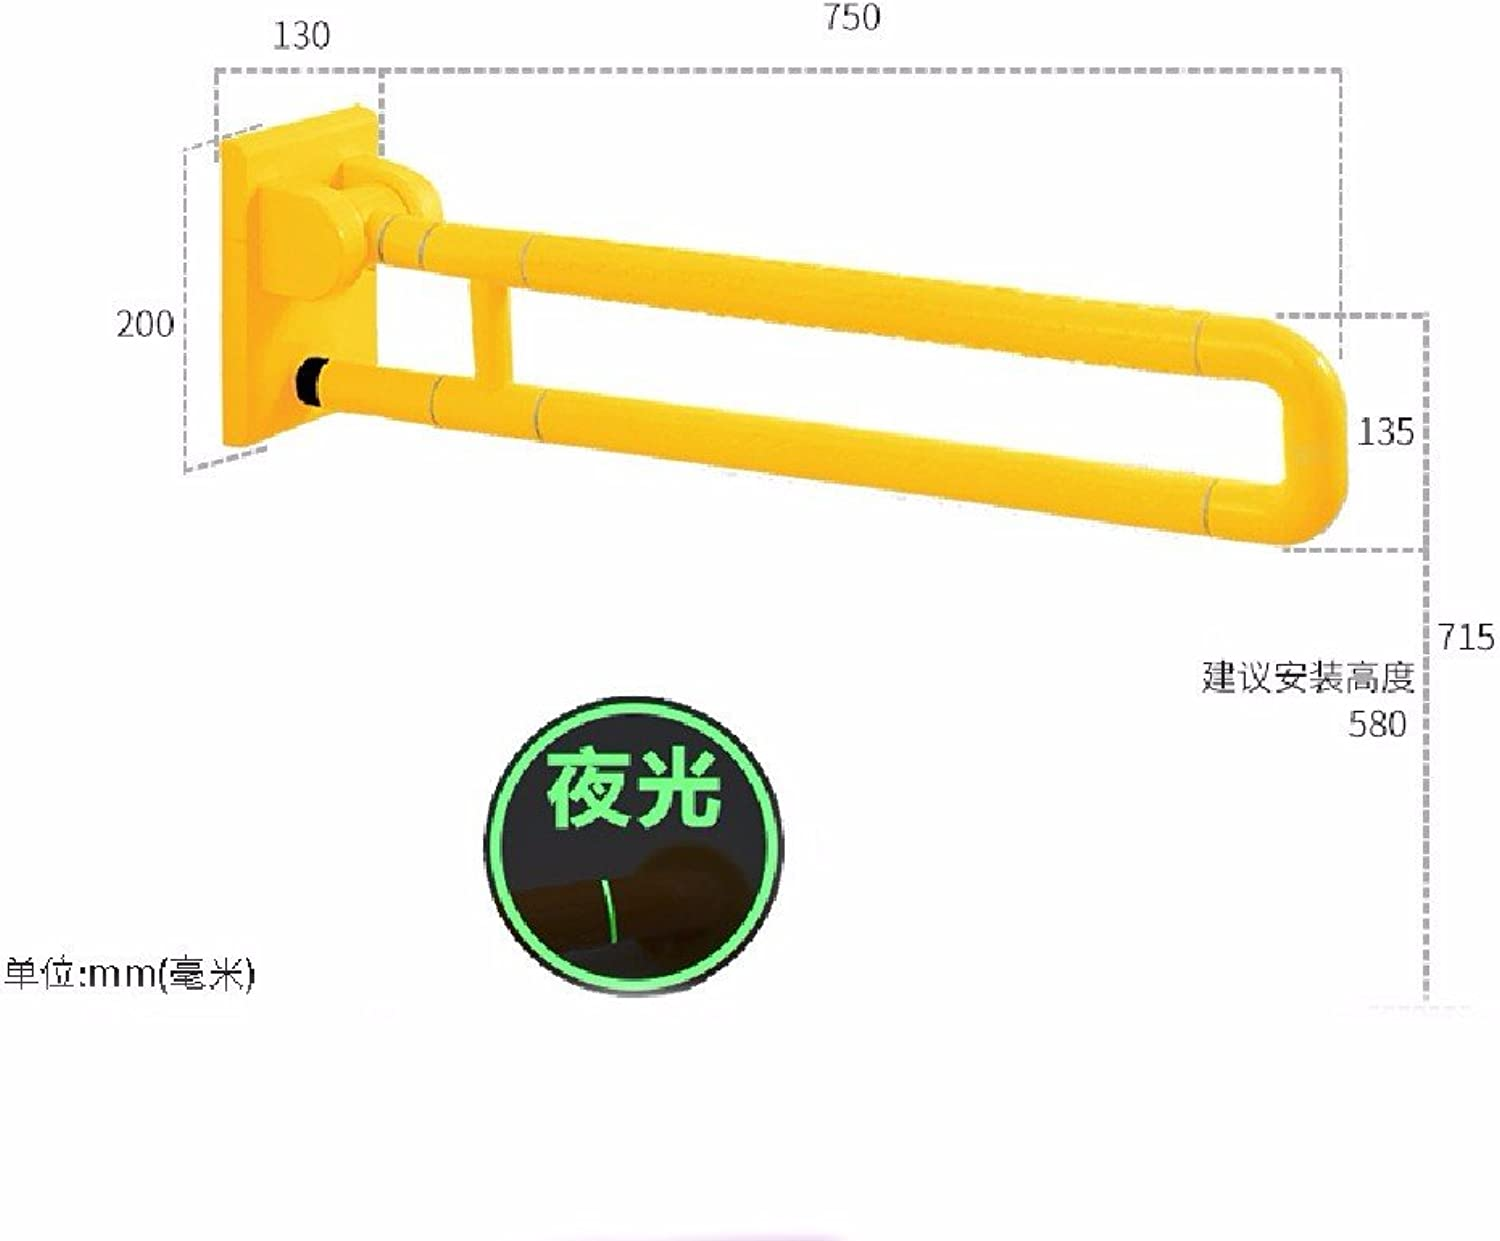 WAWZJ Handrail Barrier Free Nylon Folding The Elderly And Disabled Toilet Bathroom Basin Safety Handrail,75Cm,Yellow